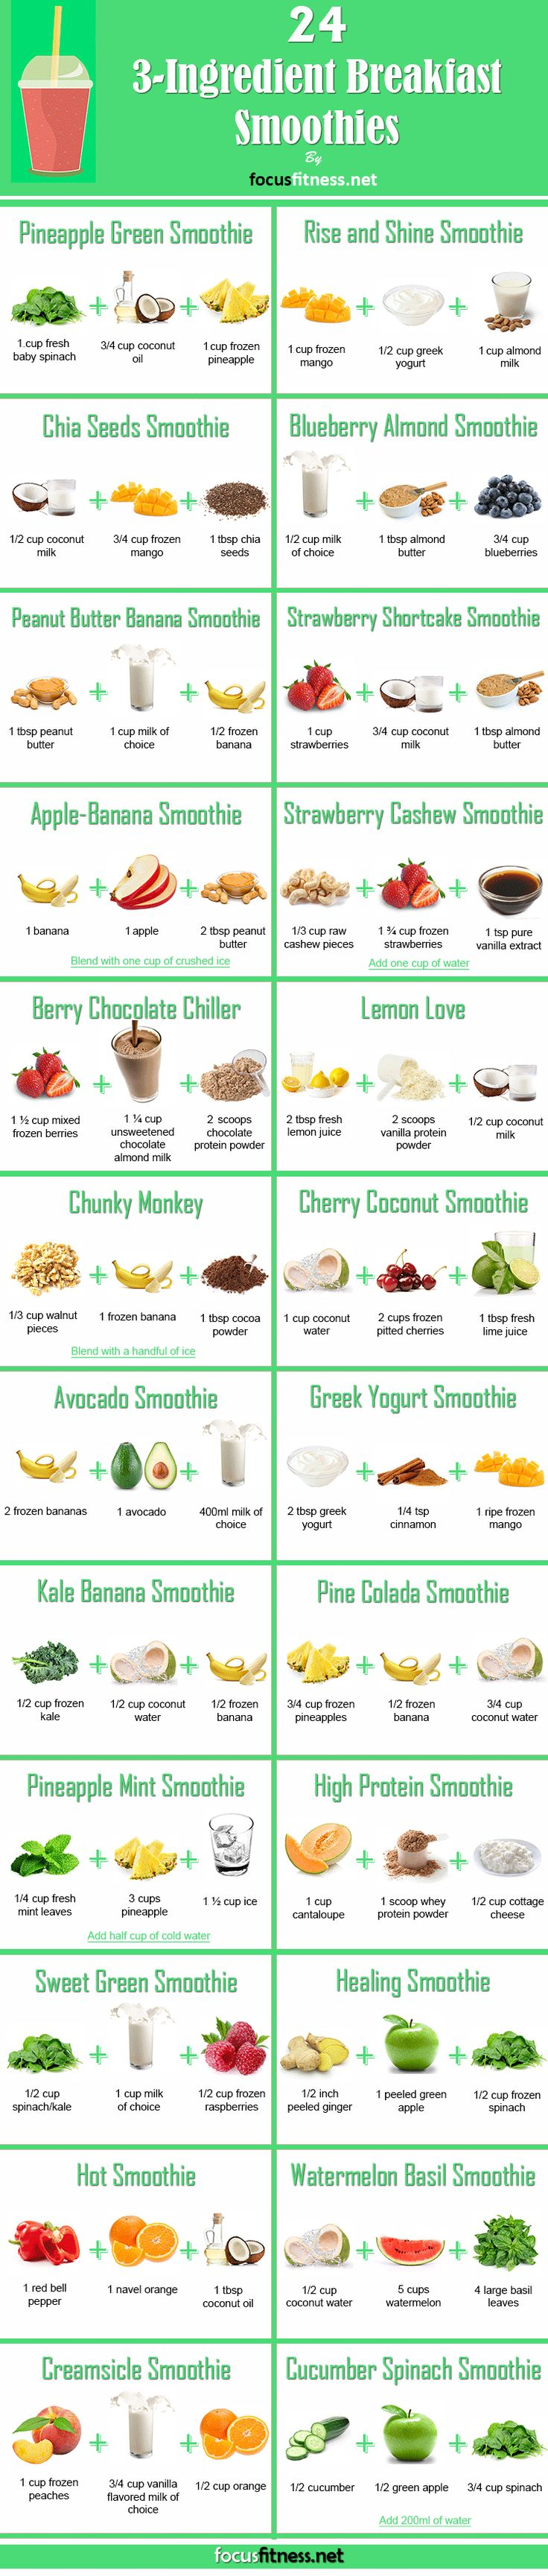 This list of weight loss smoothies is AMAZING! I love the variety of all the different smoothies that will help you lose weight, trim fat, and get healthy. These are seriously THE BEST! Pinning this for later! #Fitness #Weightloss #Smoothies